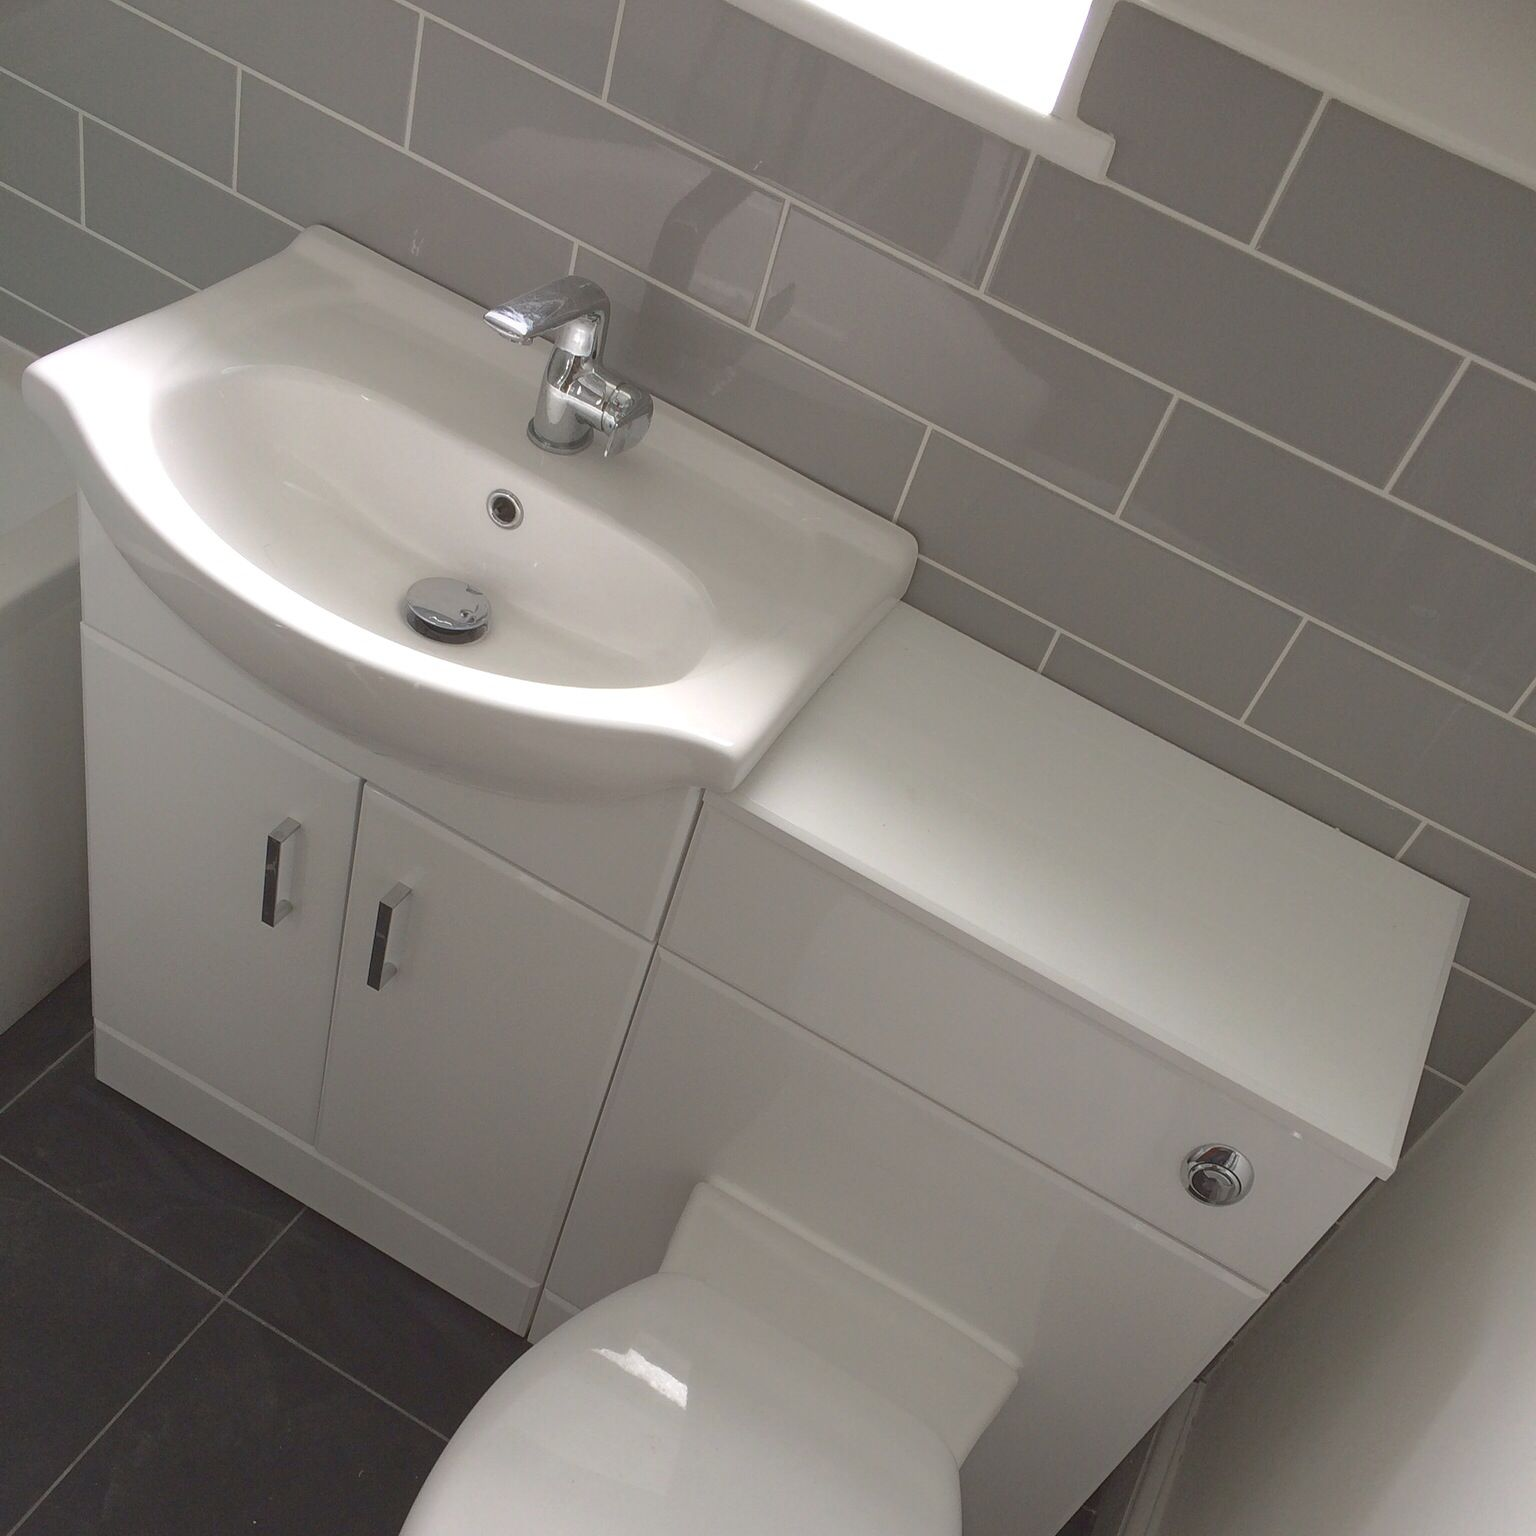 Beautiful Compact Basin And Wc On Gloss White Vanity Unit Stunning Linear Grey Brick Style White Vanity Unit Modern Bathroom Design Grey Brick Tiles Bathroom